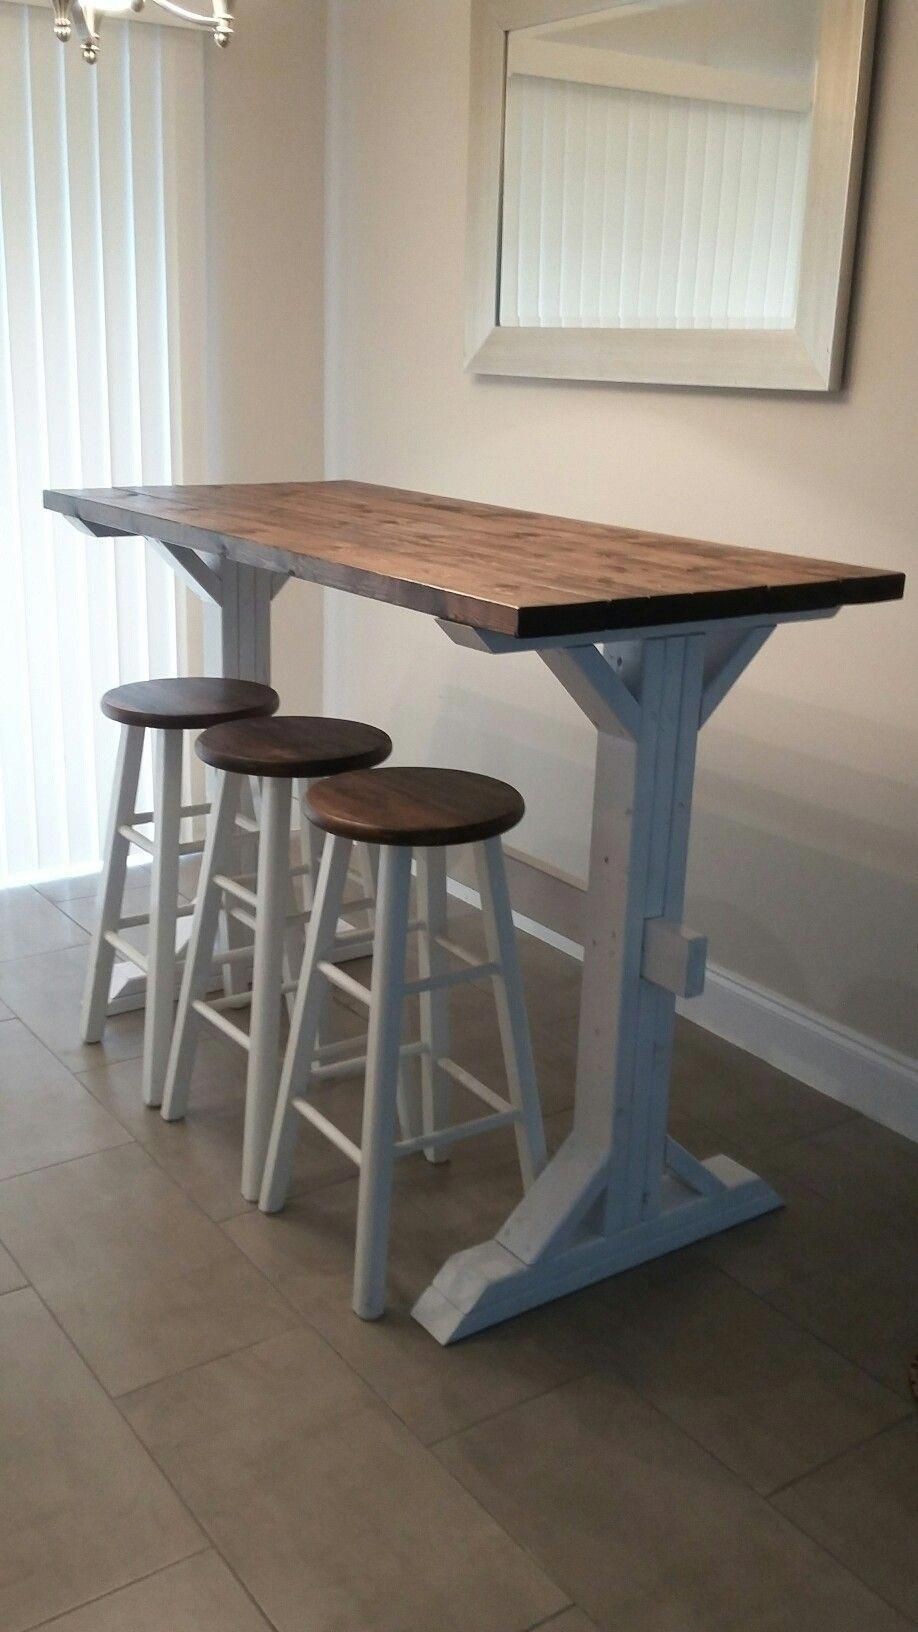 Bar Table We Re Now Going To Step Away From All The Different Styles And Talk A Little About Suspended Bar Kitchen Bar Table Home Decor Kitchen Bar Furniture